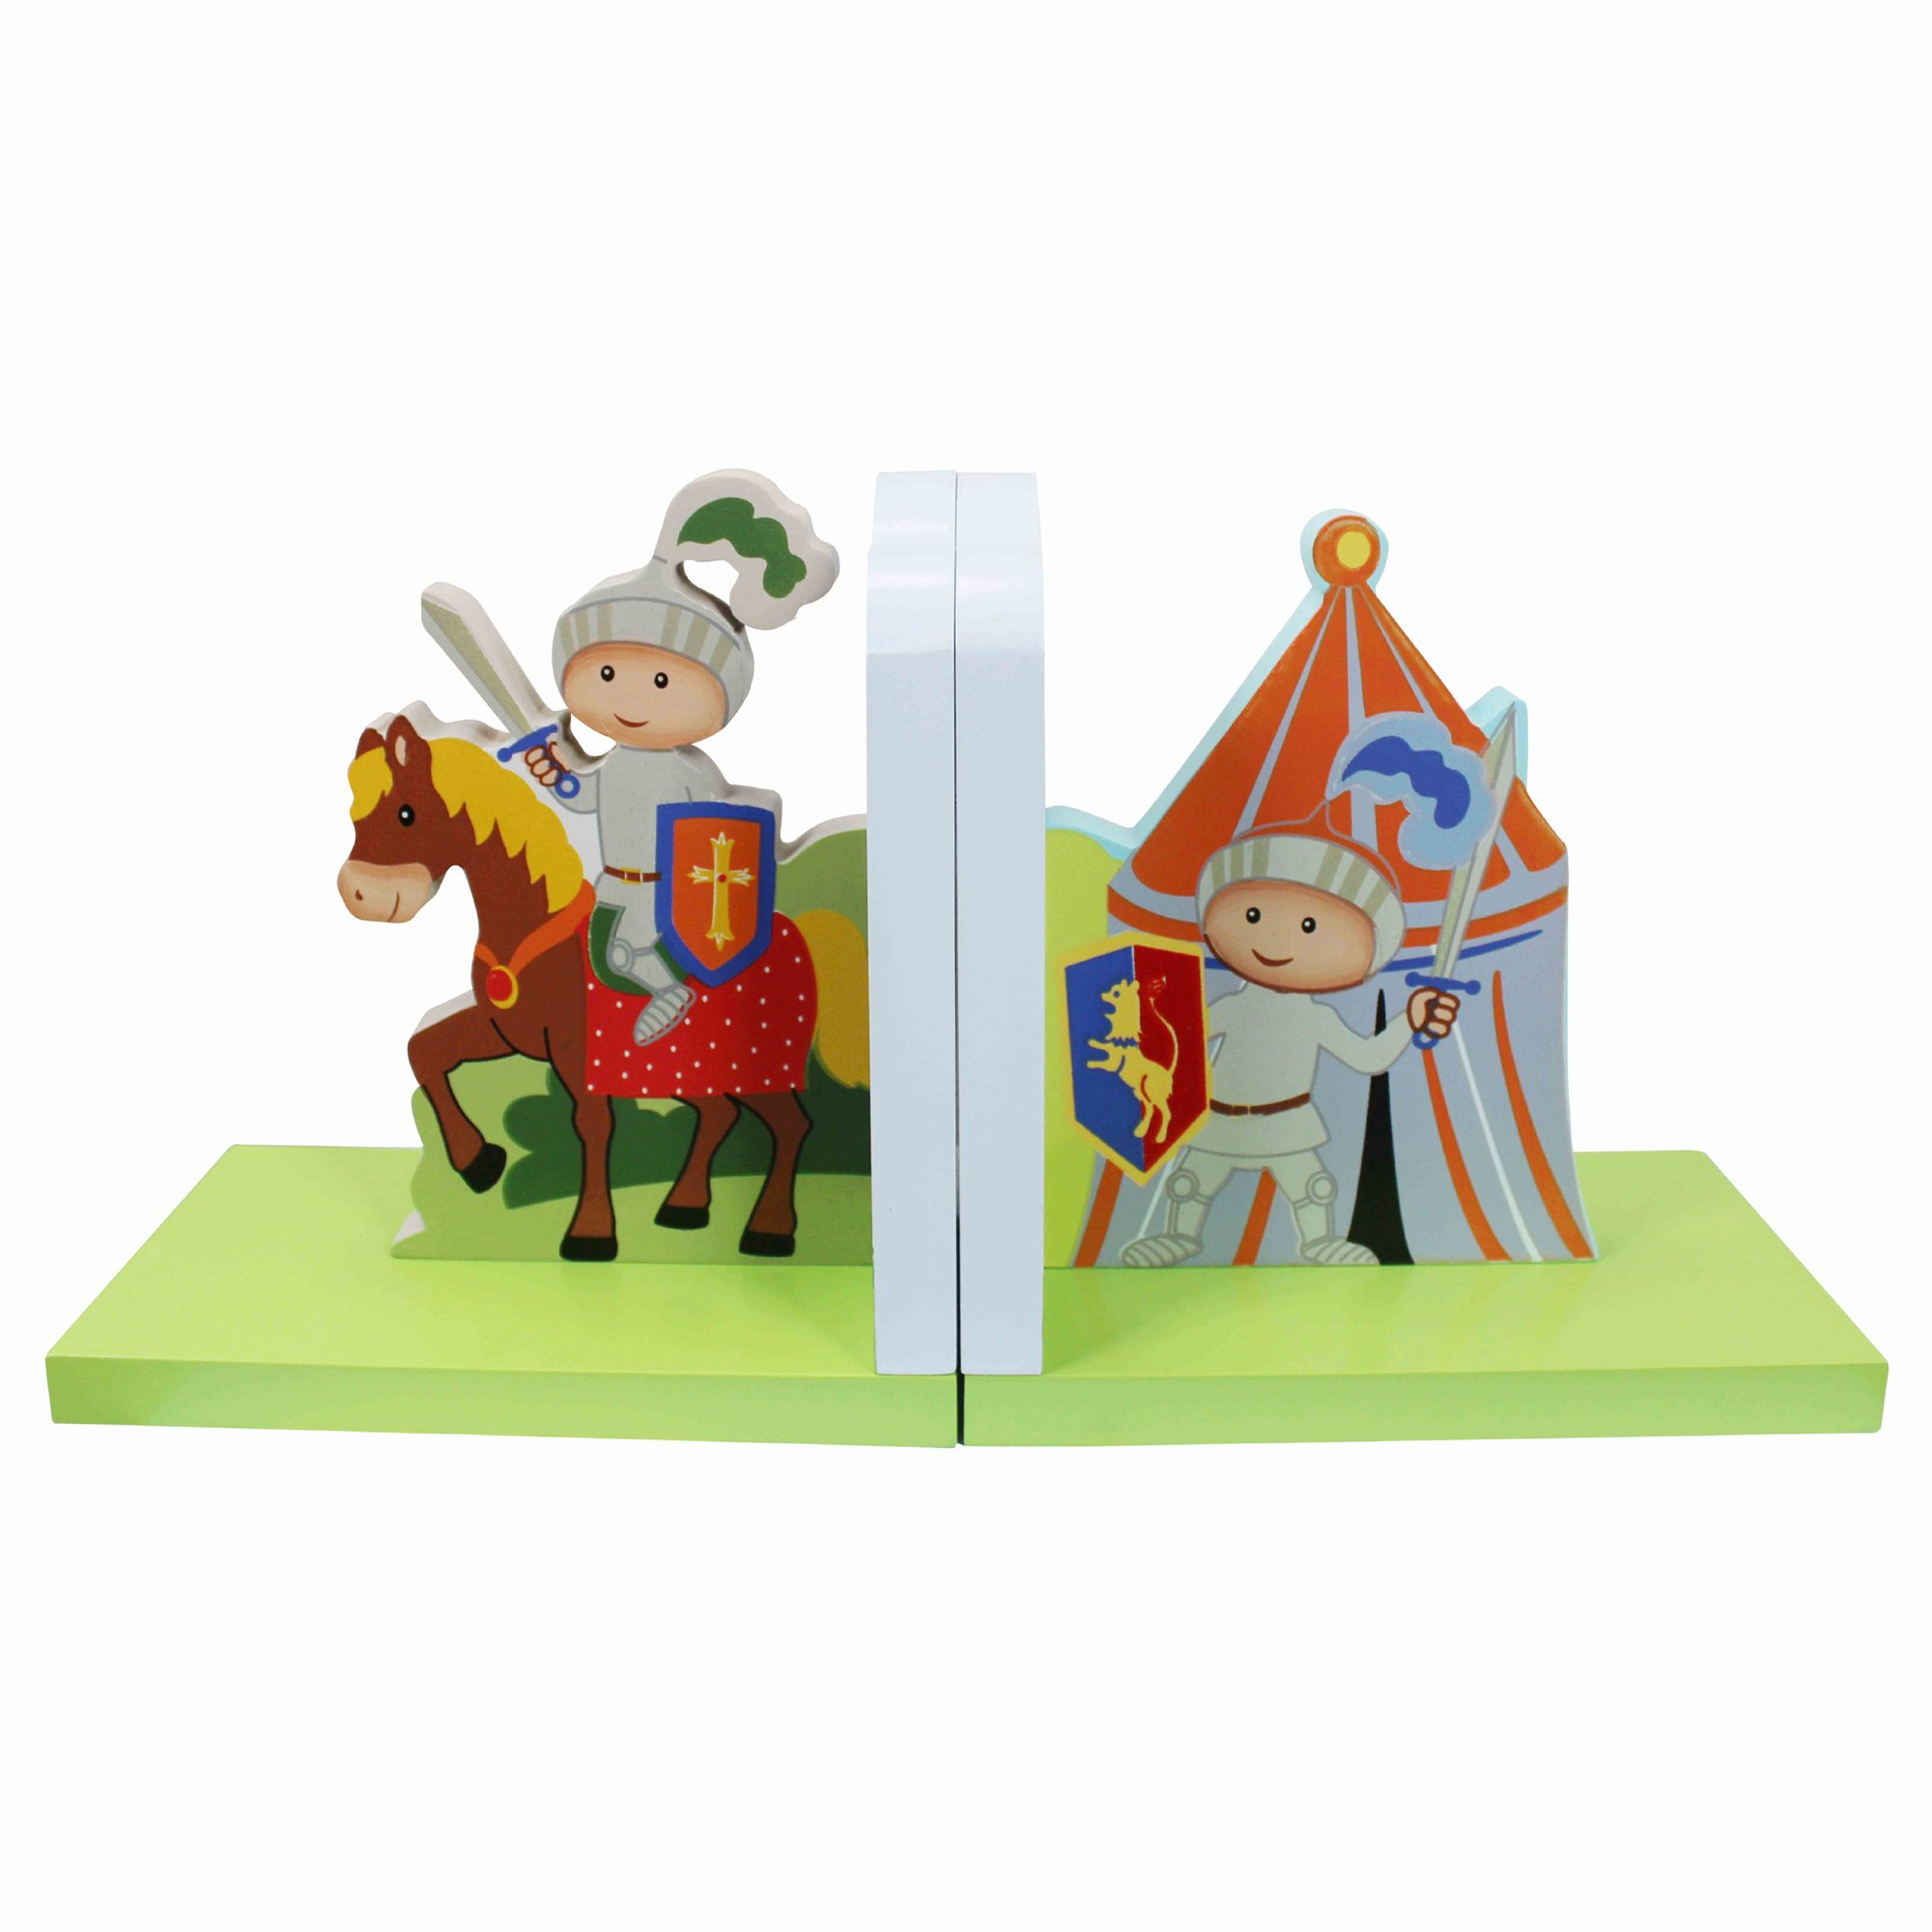 Fantasy Fields Knights & Dragon Thematic Set of 2 Wooden Bookends for Kids |  Imagination Inspiring  Hand Crafted & Hand Painted Details Non-Toxic, Lead Free Water-based Paint